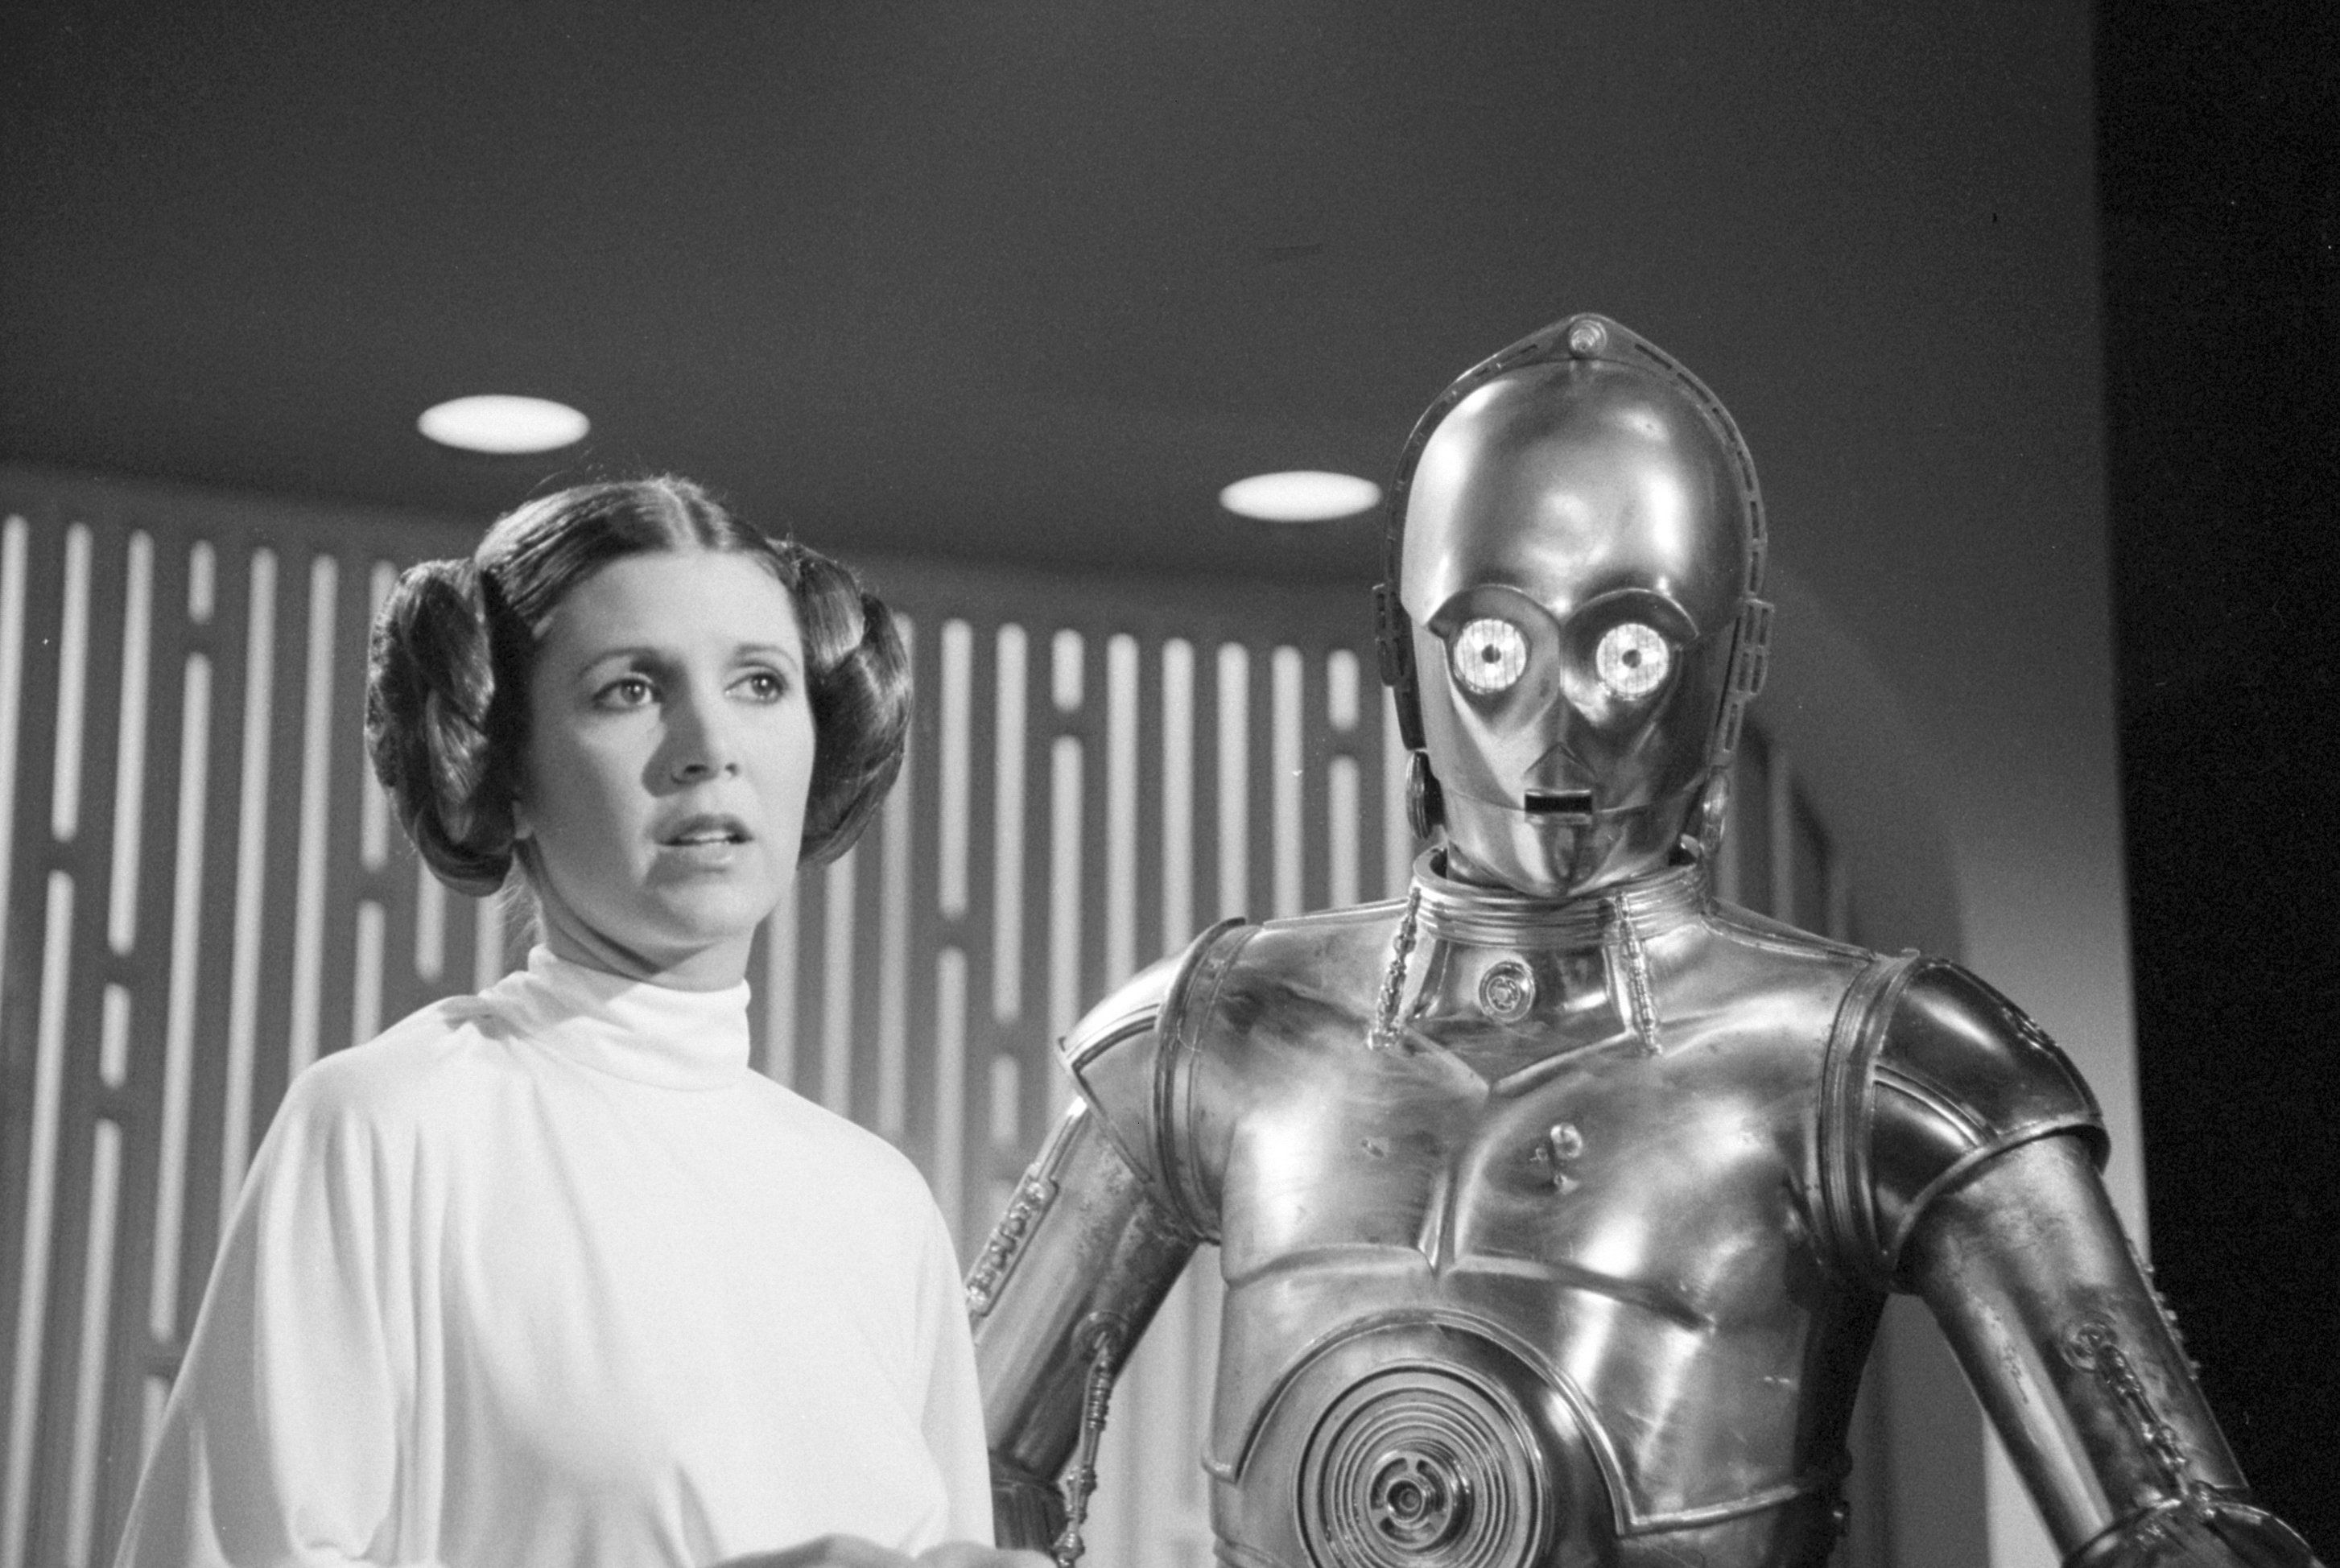 LOS ANGELES - AUGUST 23: THE STAR WARS HOLIDAY SPECIAL. Carrie Fisher (as Princes Leia) and Anthony Daniels (as C3PO) .  Image dated August 23, 1978. (Photo by CBS via Getty Images)